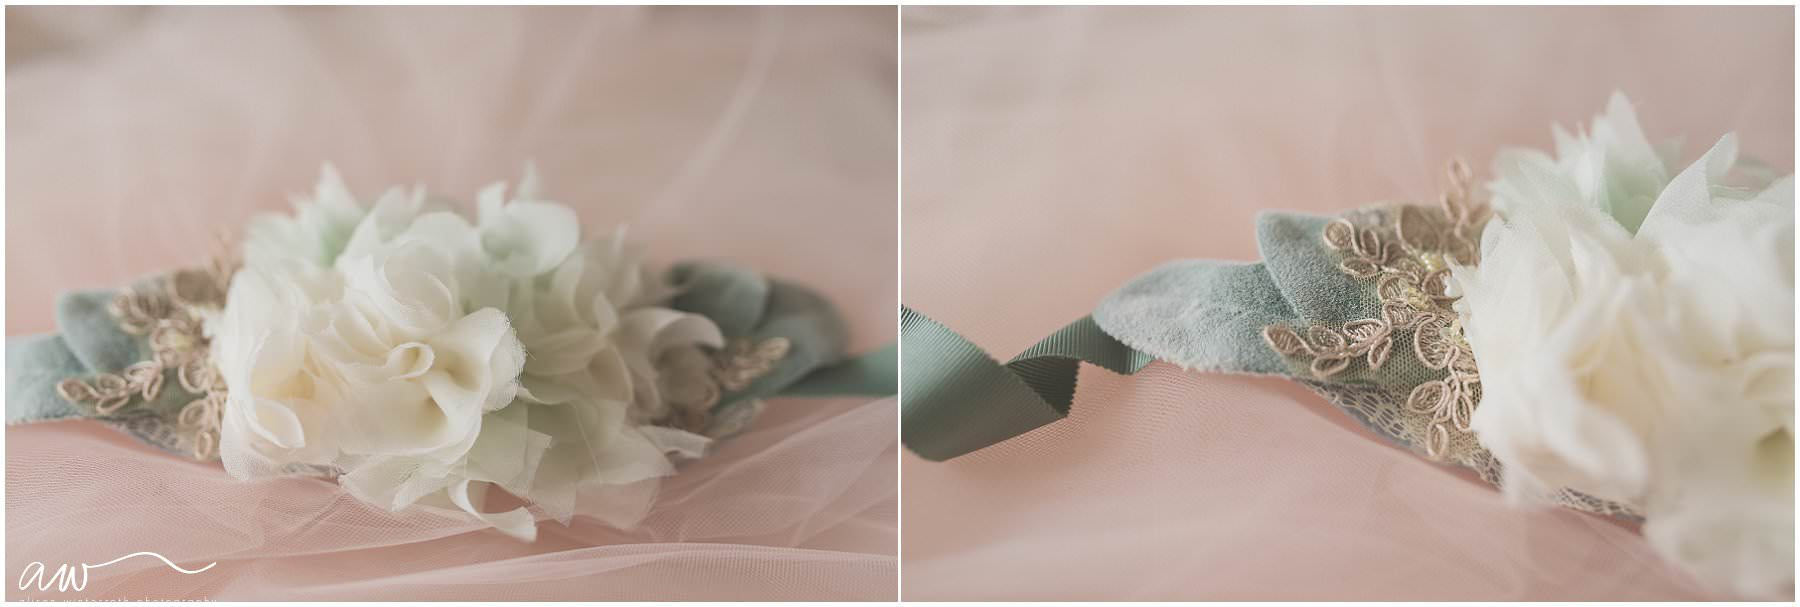 Tulle flower belt with dusty miller for a maternity session in Tampa, Fl